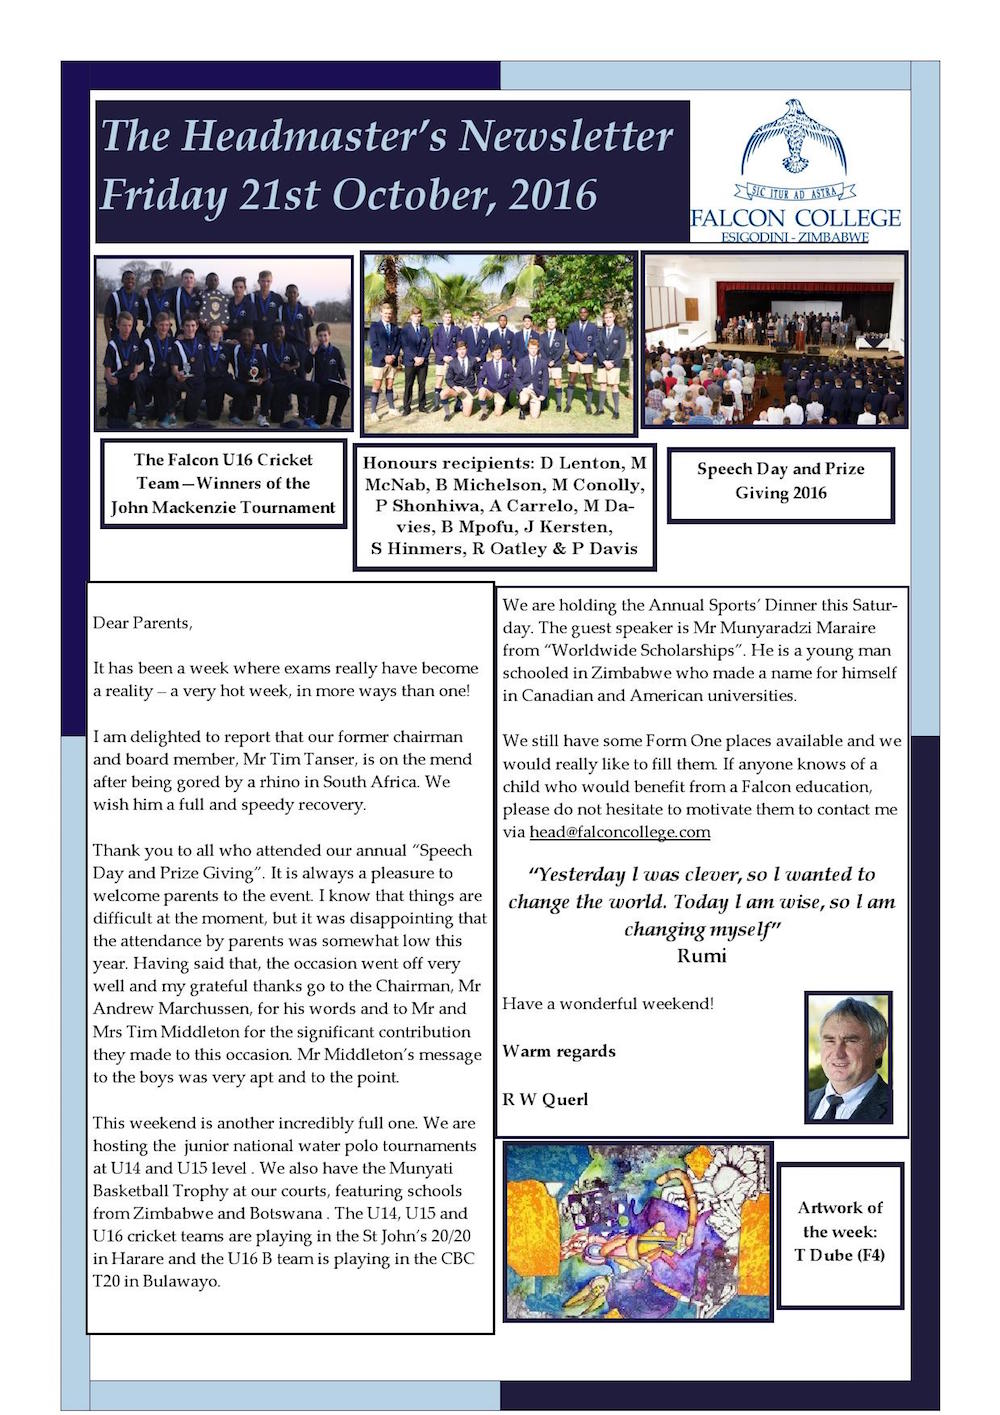 headmasters-newsletter-friday-21st-october-2016-edited_000001